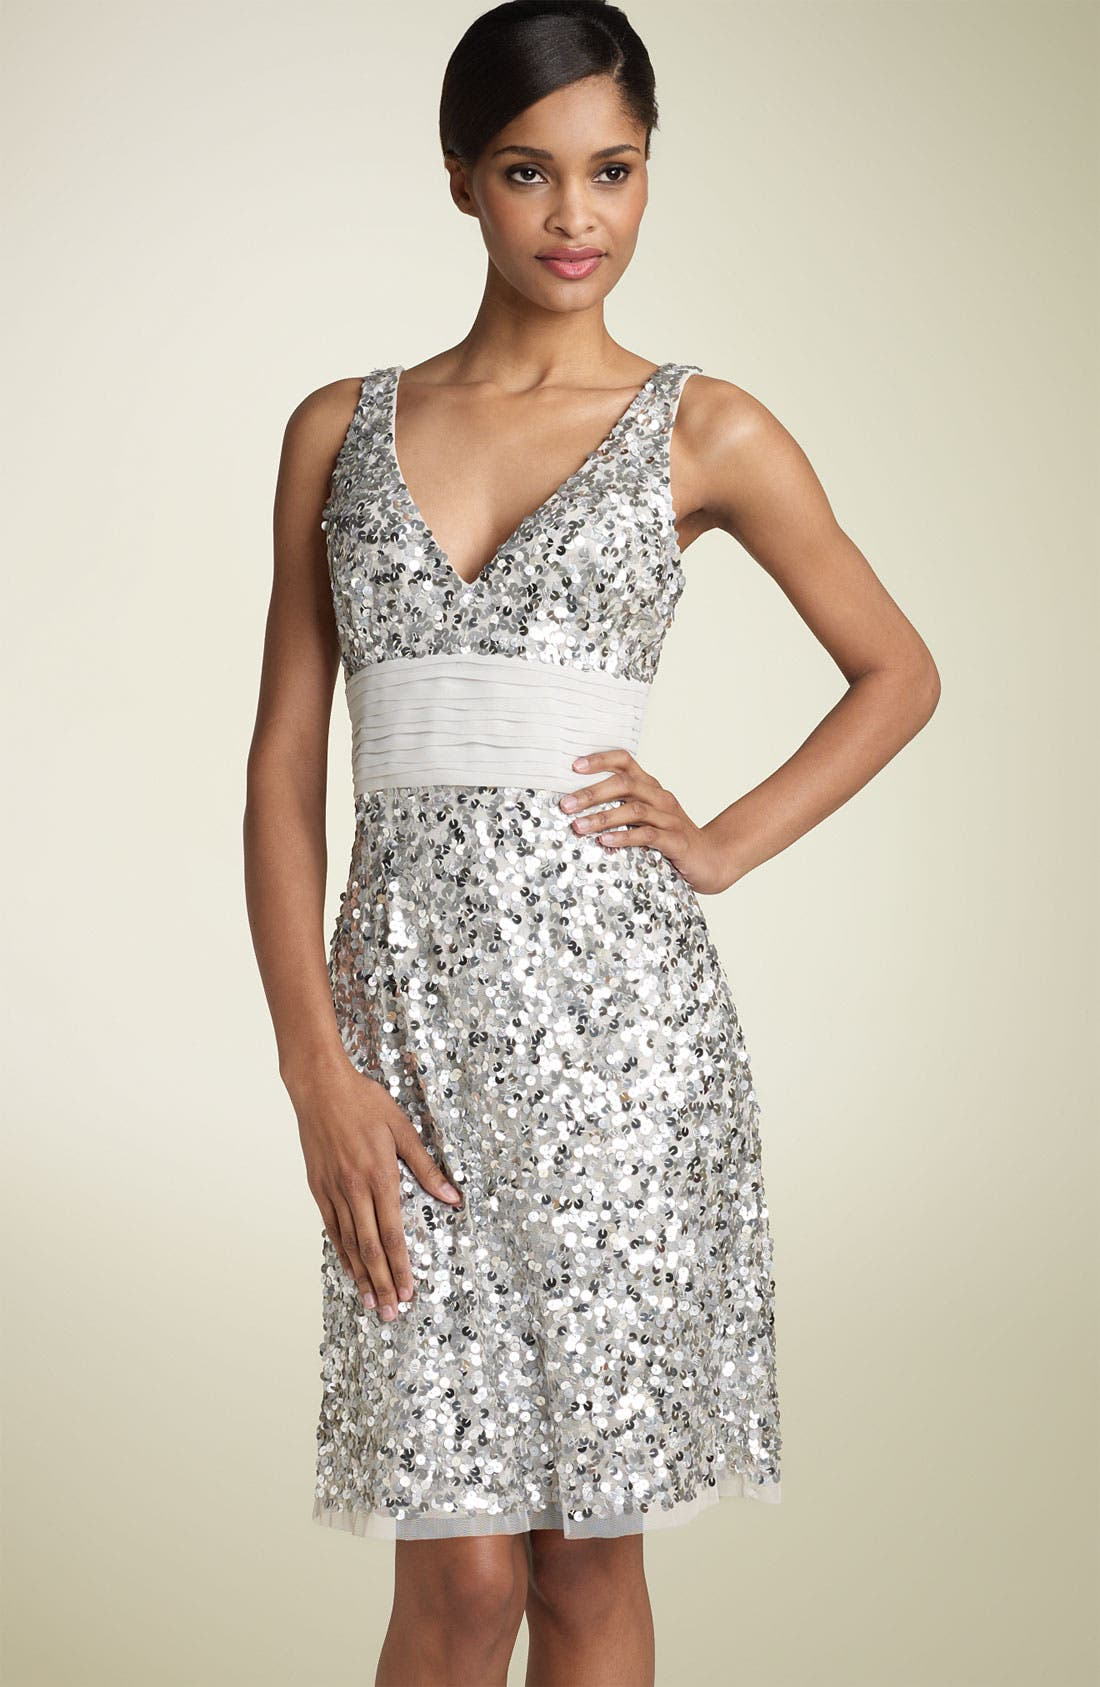 Alternate Image 1 Selected - Adrianna Papell Sequin Sheath Dress with Chiffon Waist